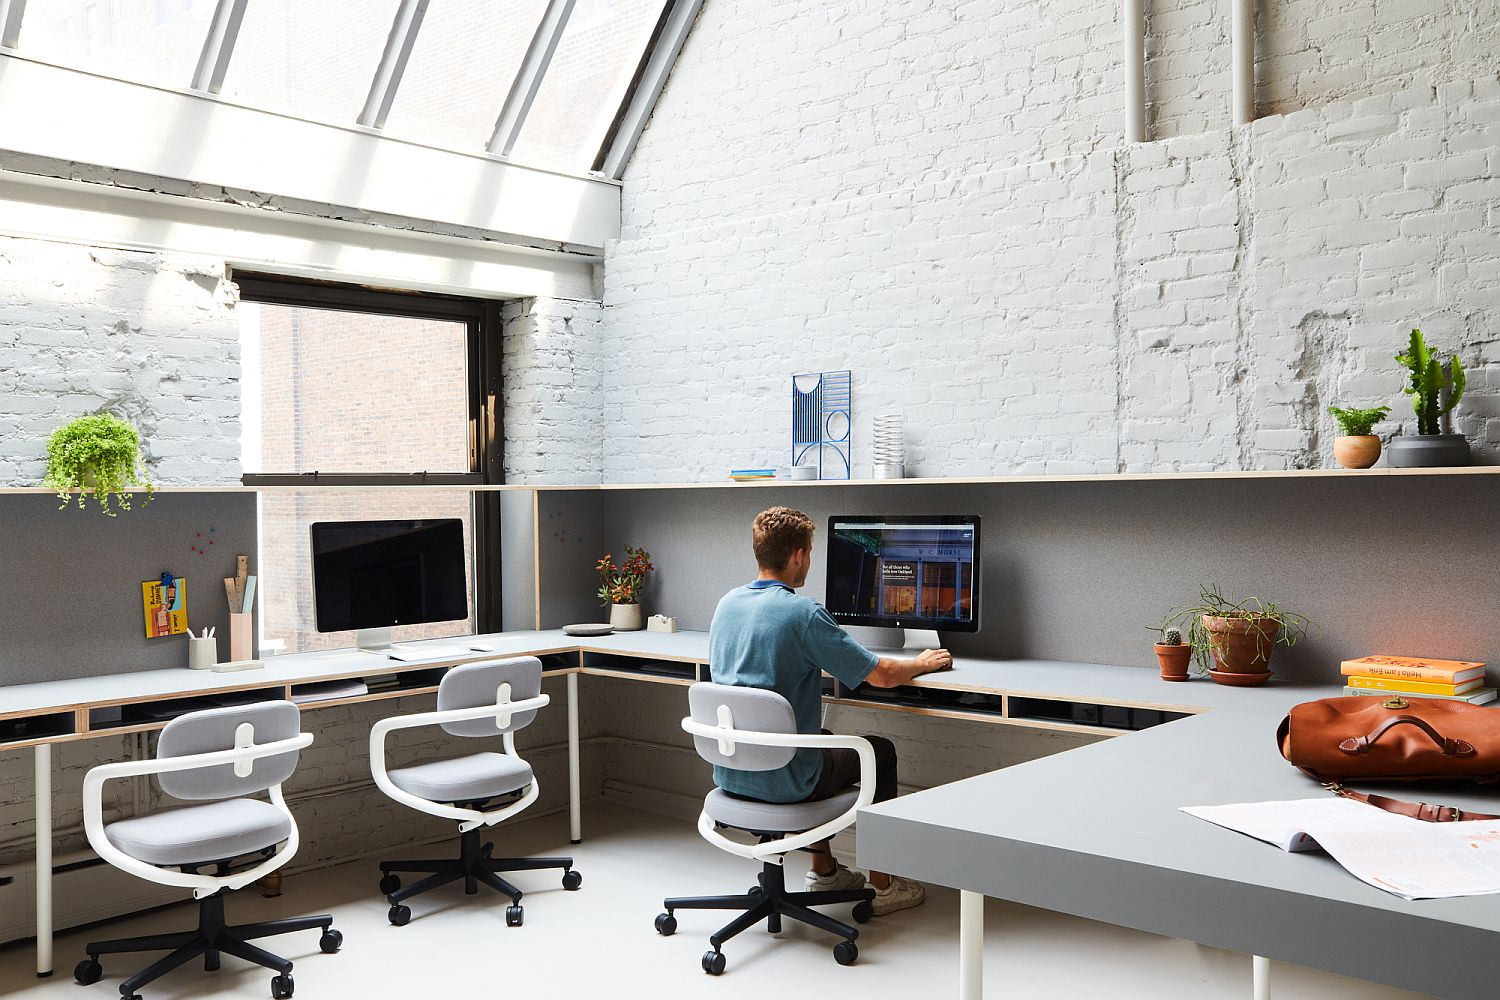 Exposed brick walls and skylights shape a unqiue office space